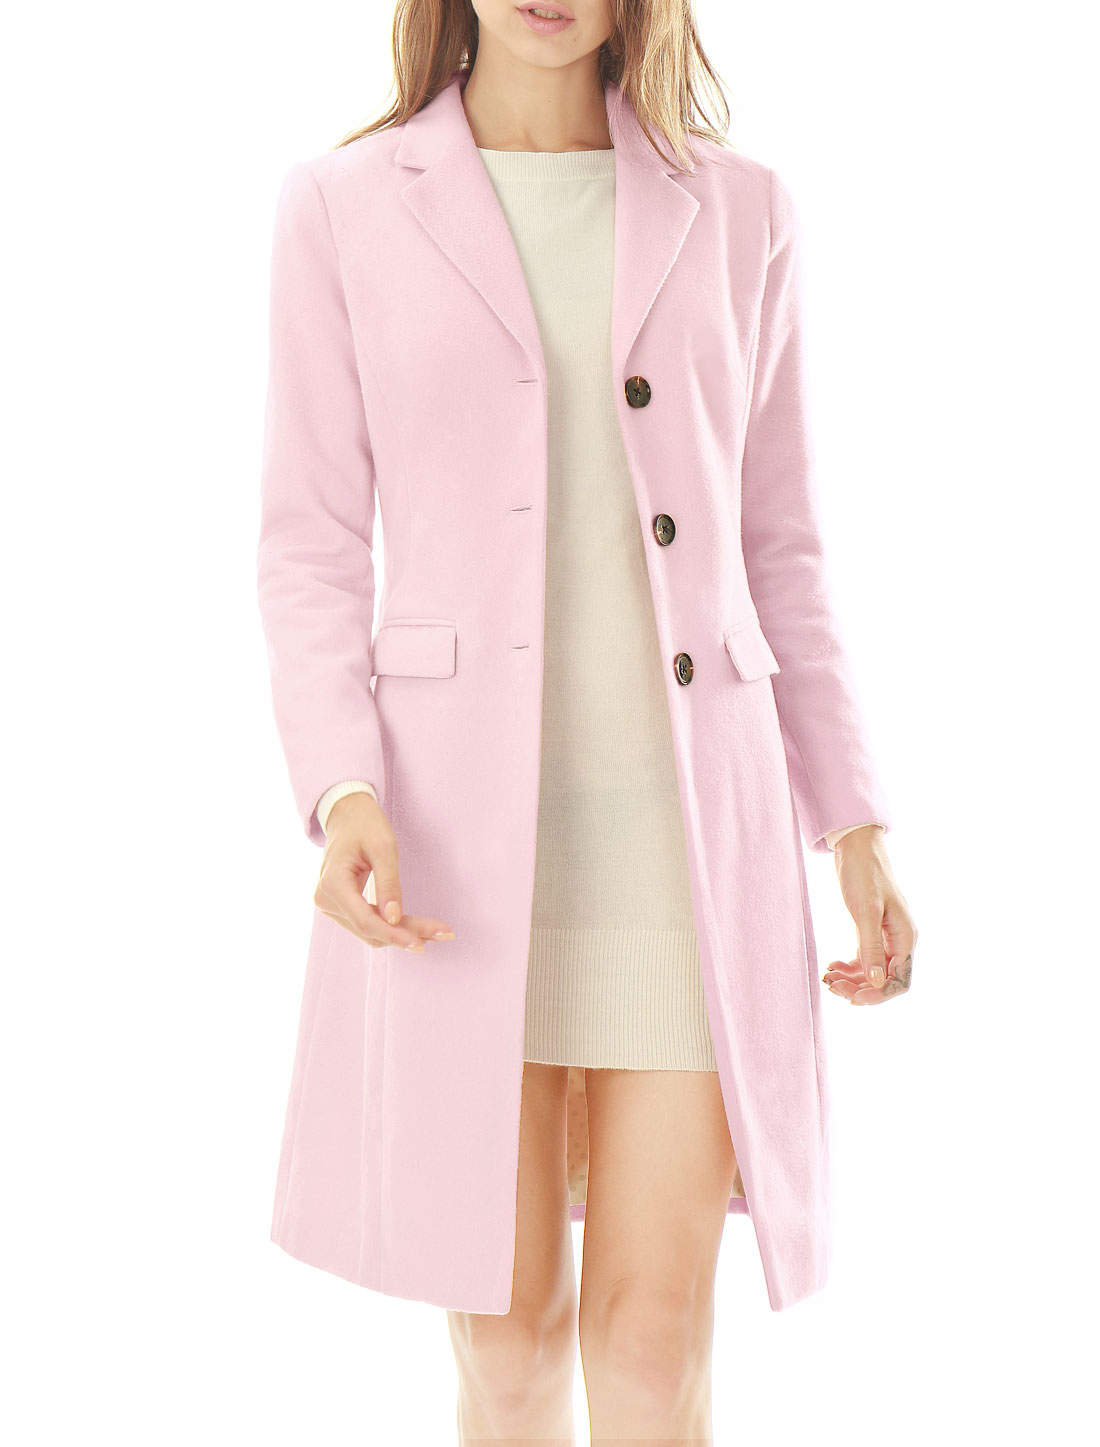 Women Notched Lapel Button Closure Worsted Long Coat Light Pink M